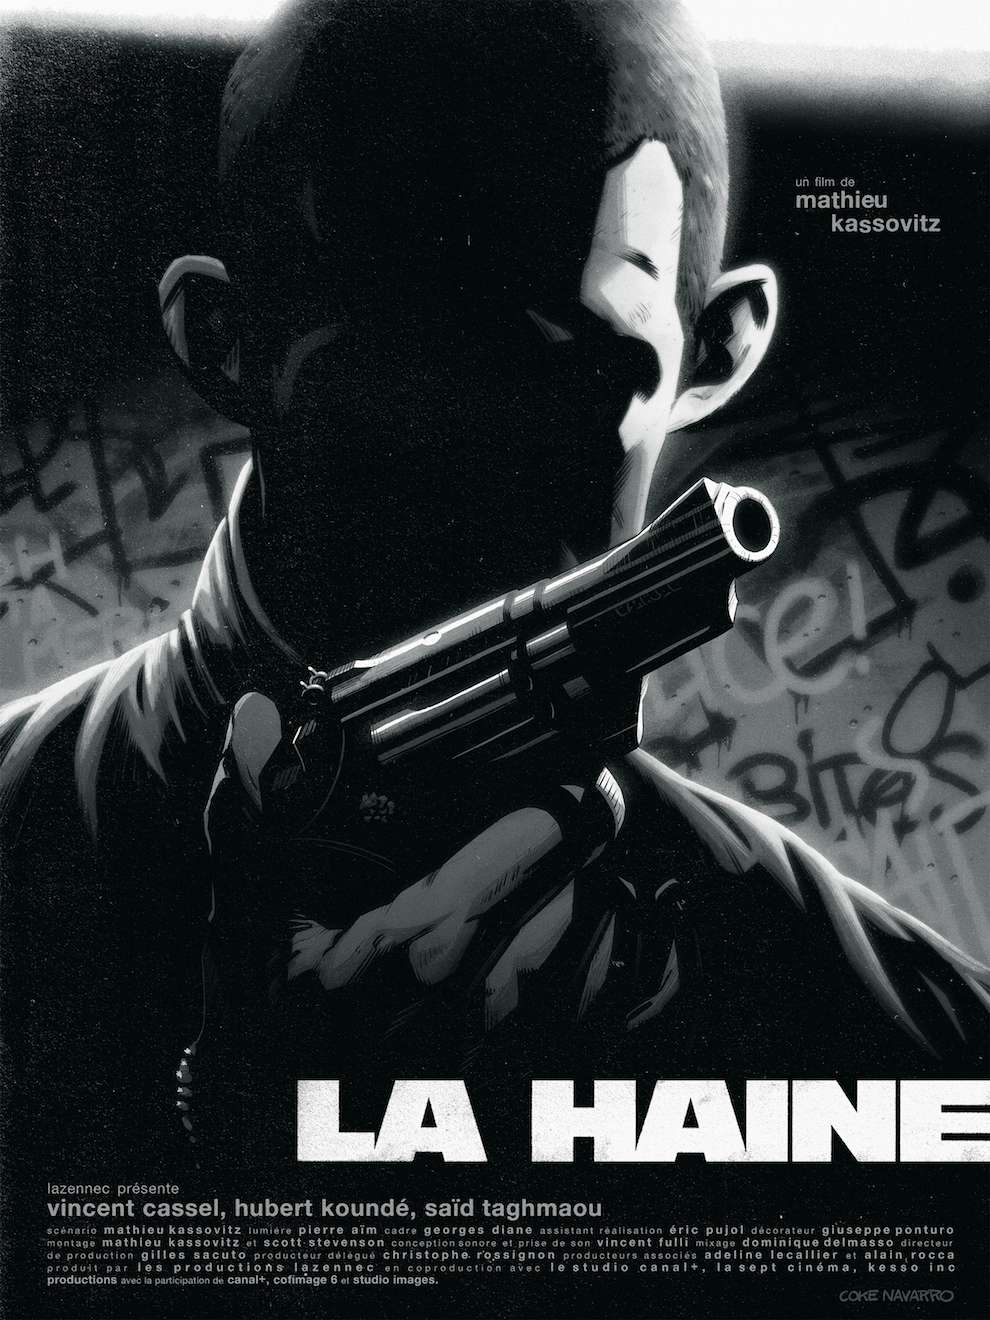 Coke Navarro, Dark film poster for the movie la haine. Actor Vincent Cassel in a shadow holding a gun